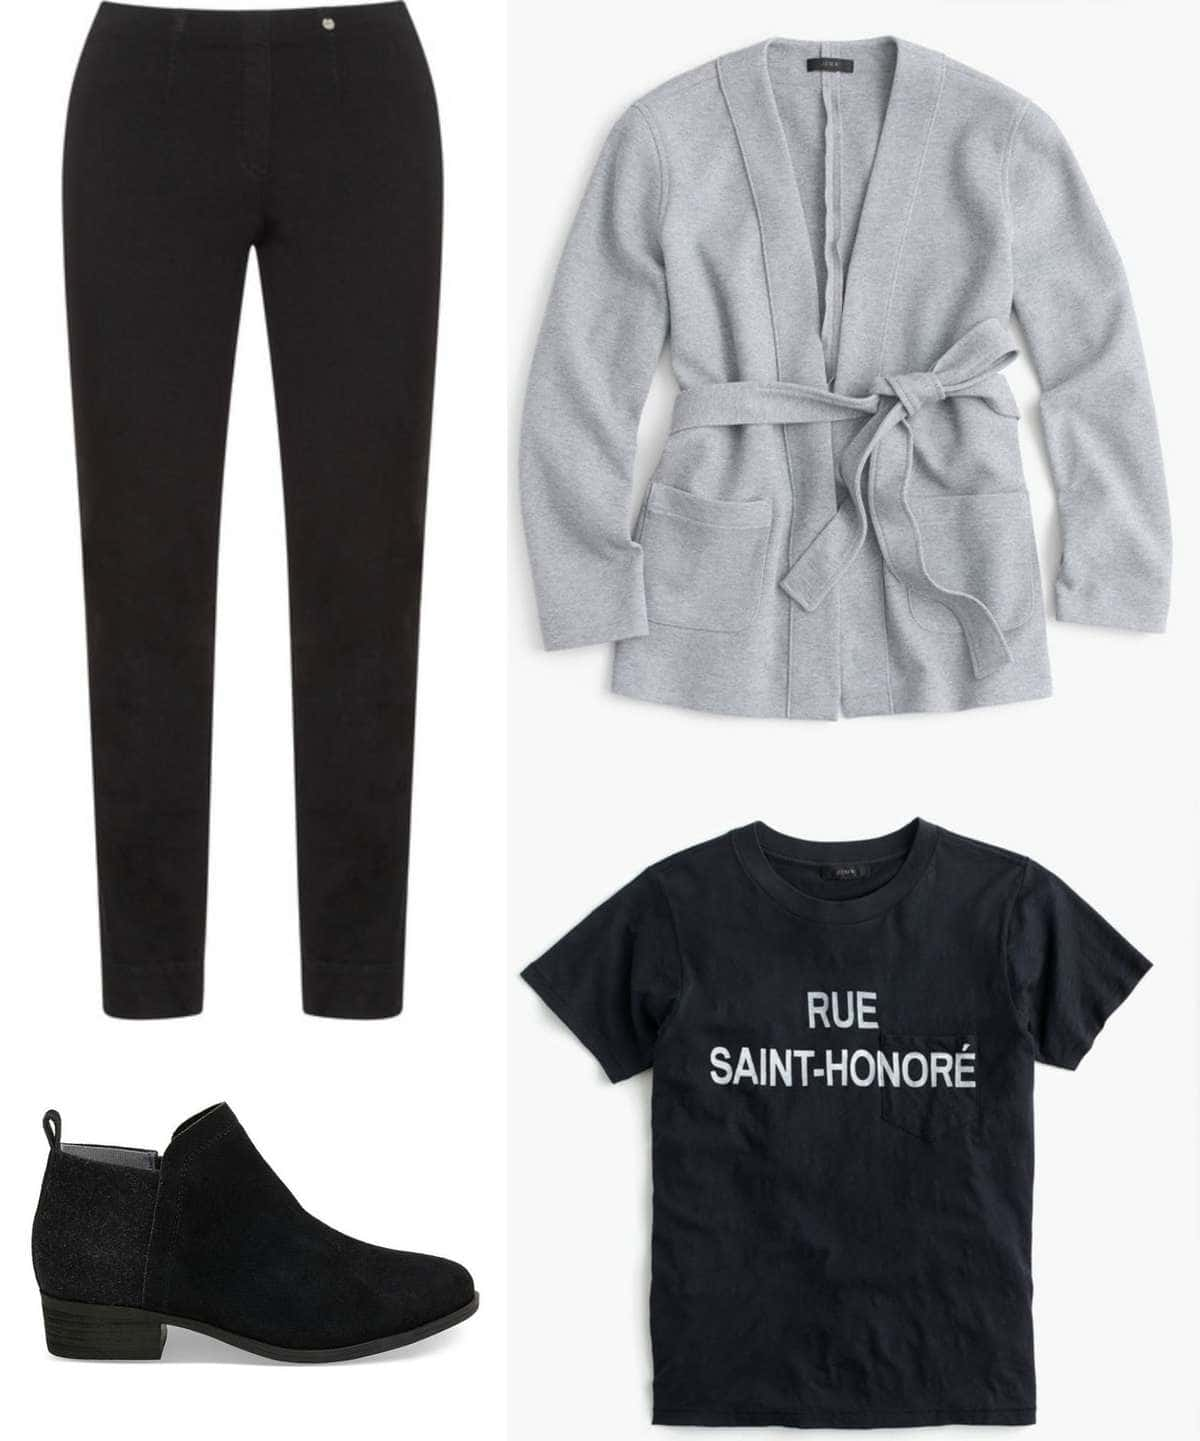 With stretchy pants and a belted sweatshirt, you can be as comfy as you would be in sweats and yoga pants!